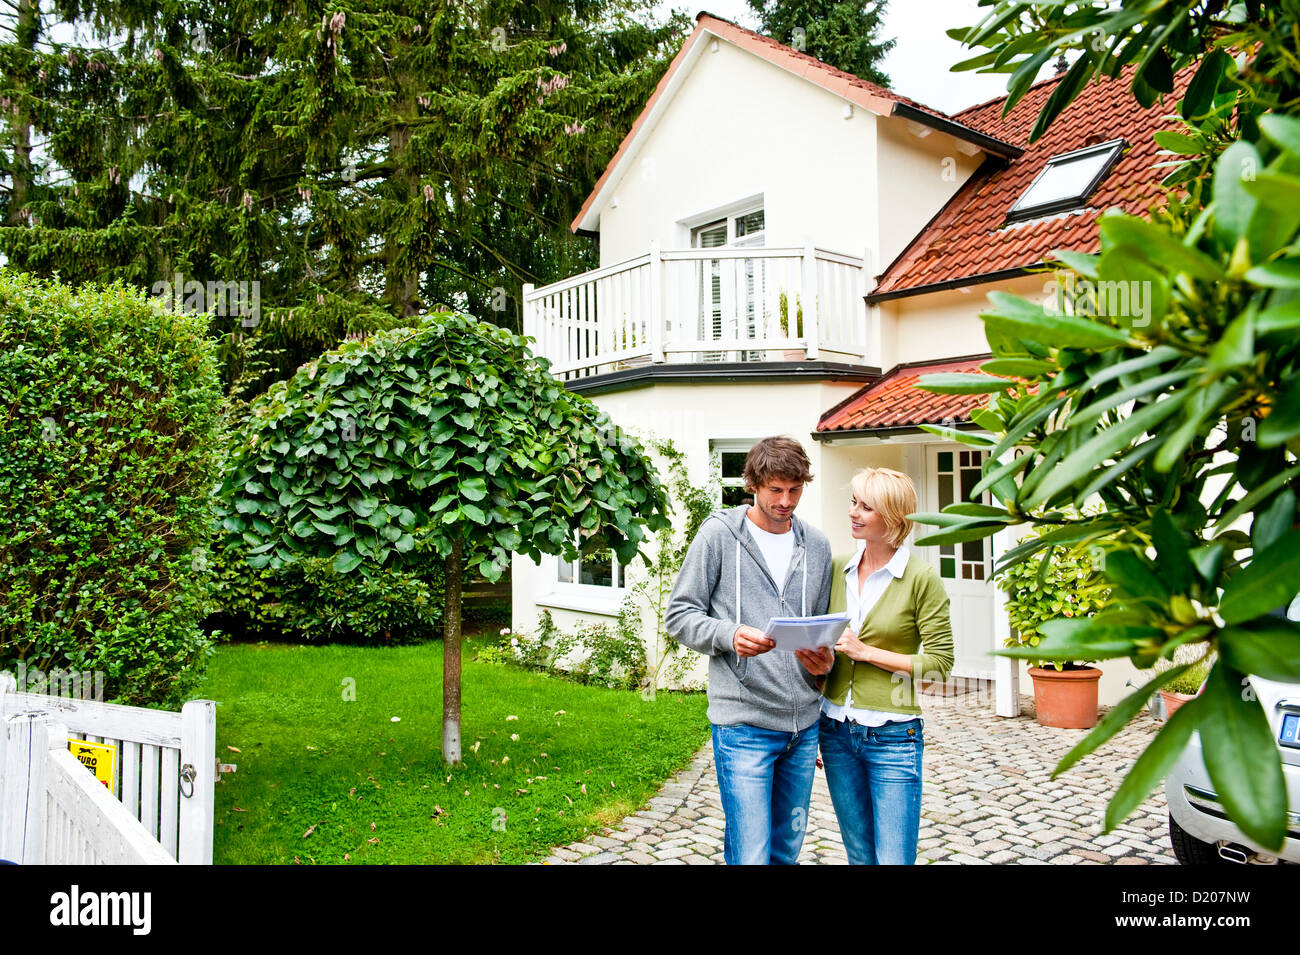 Young couple is looking at documents in front of a house, Hamburg, Germany - Stock Image